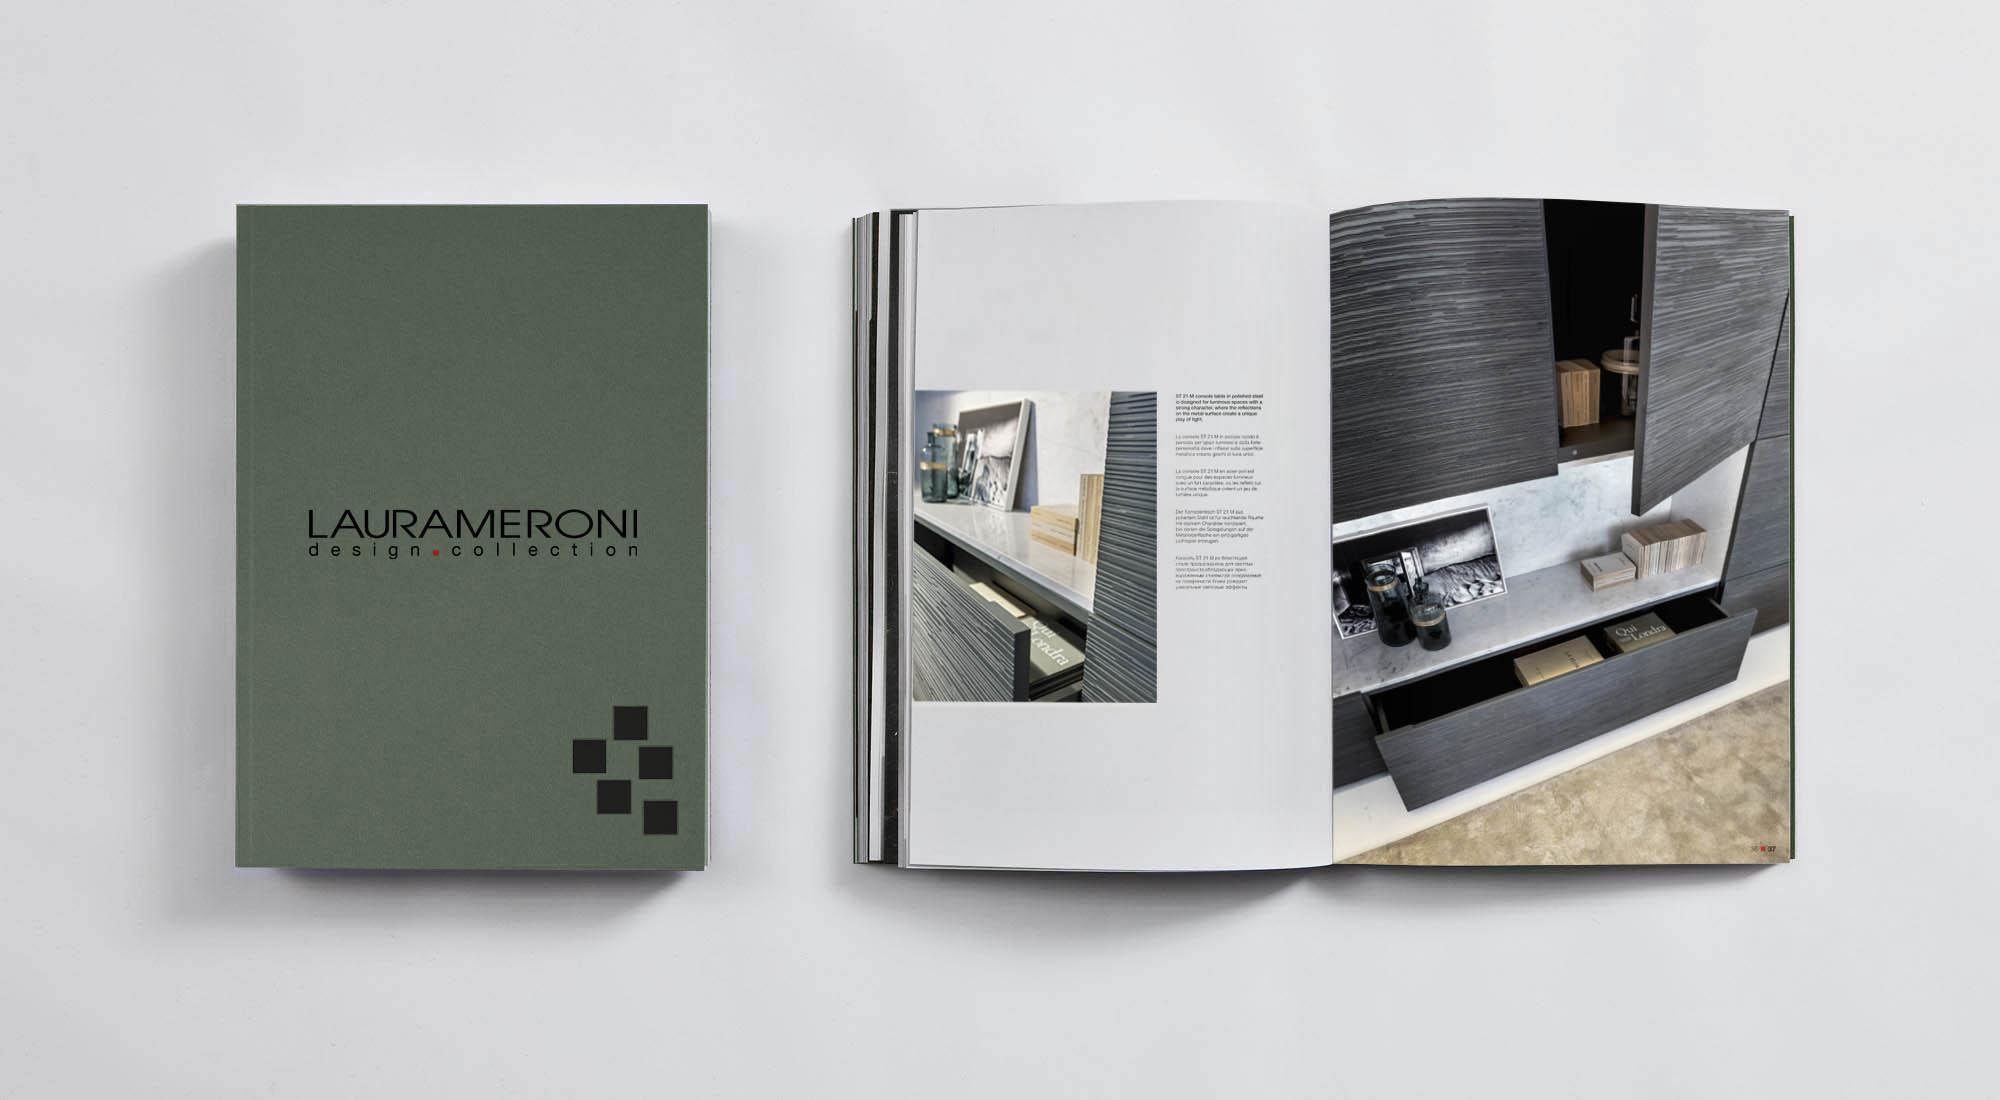 laurameroni luxury modern day systems and cabinets catalogue free download